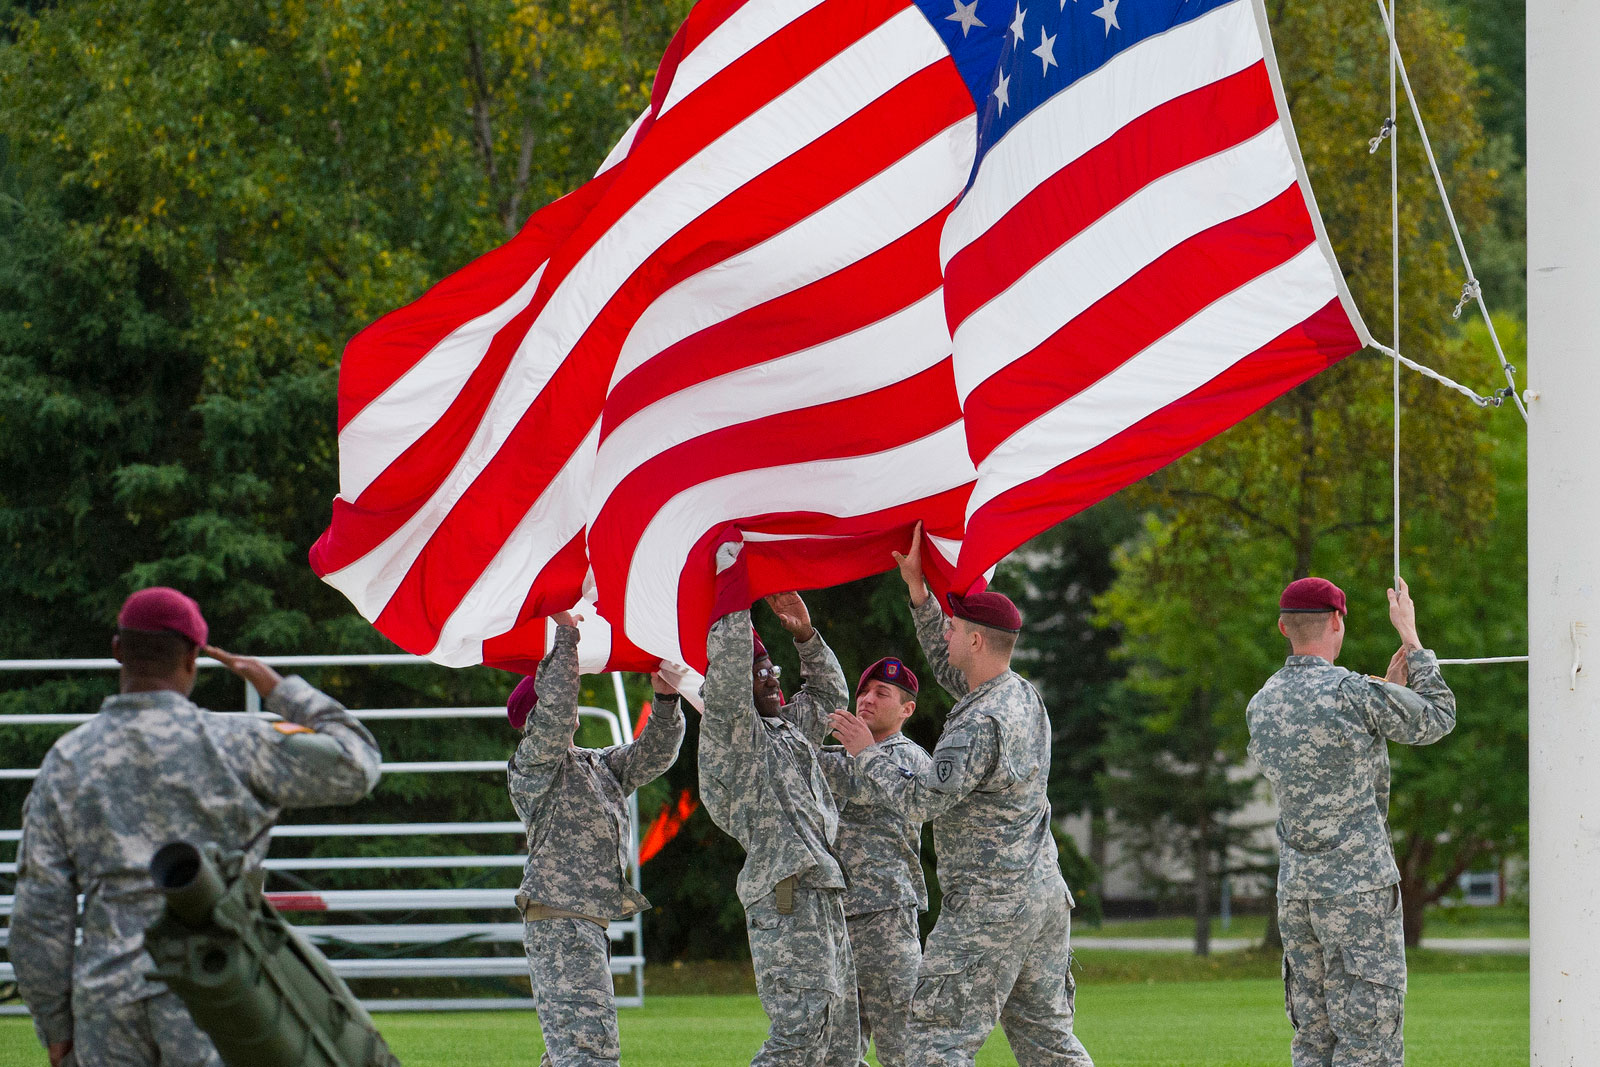 Rendering Courtesy And Honors To The FLAG gt Joint Base Elmendorf  F LX  Rendering Courtesy And Honors To The Flag